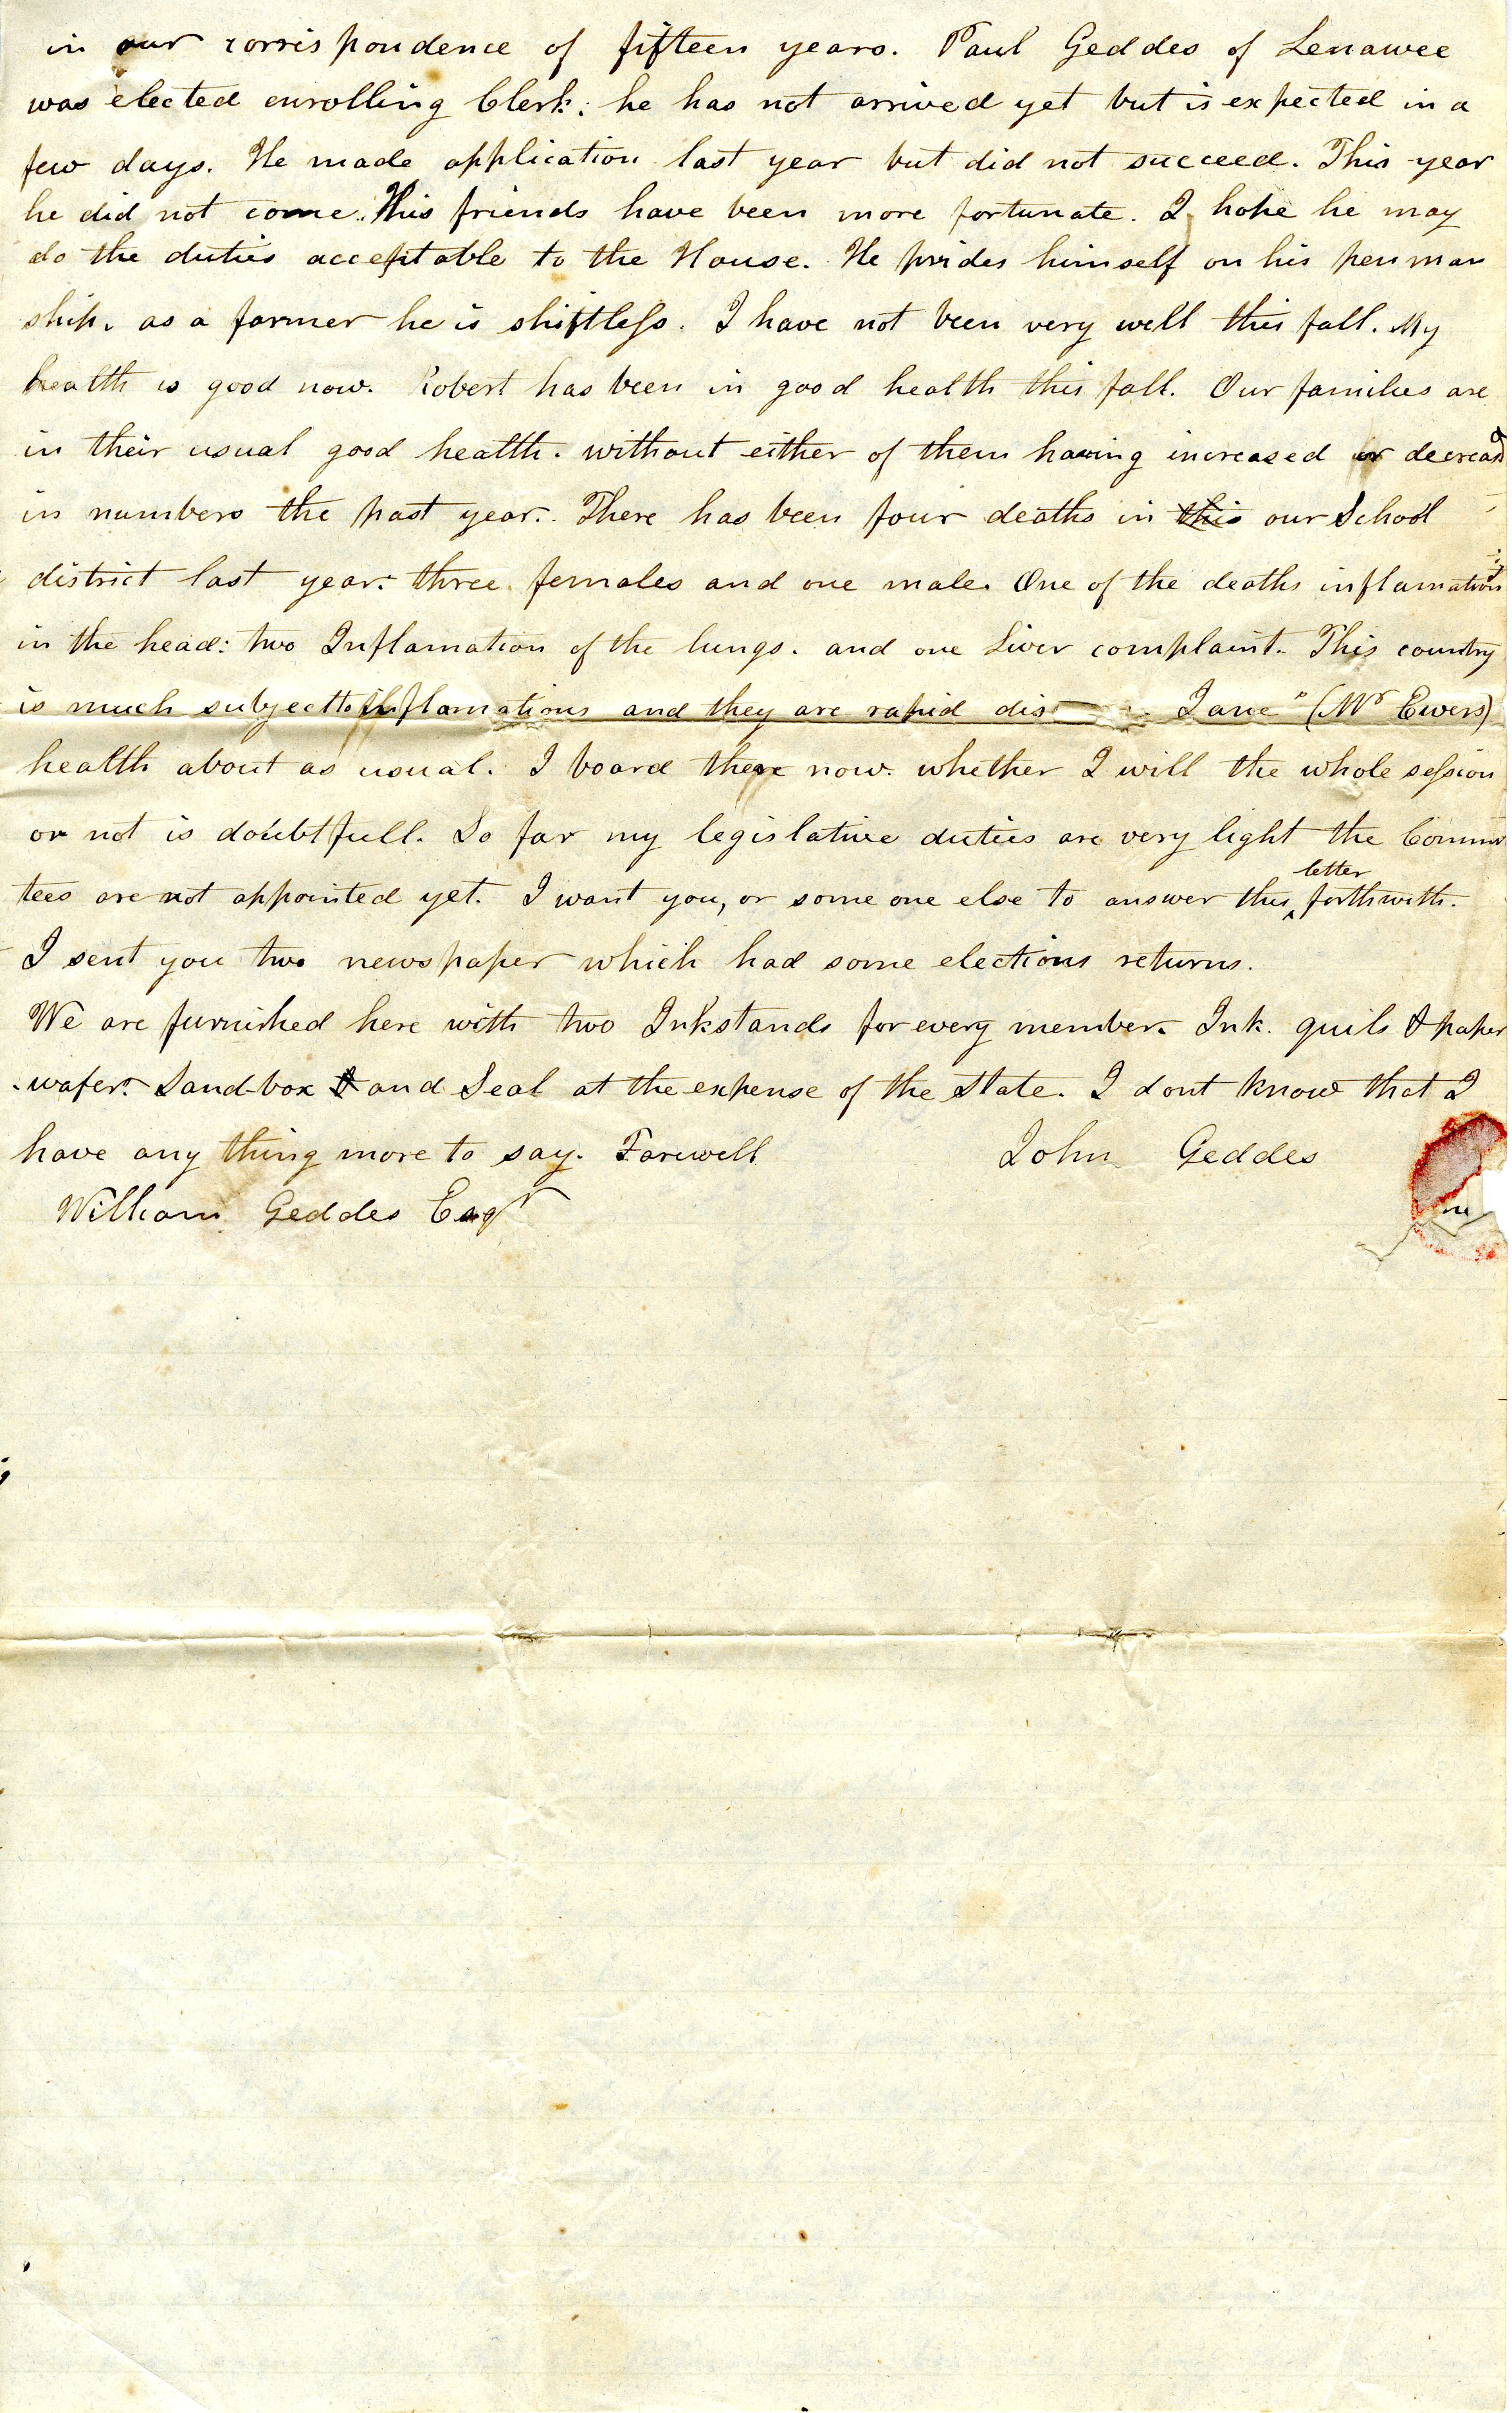 Letter From John Geddes to William Geddes, January 7, 1841 image